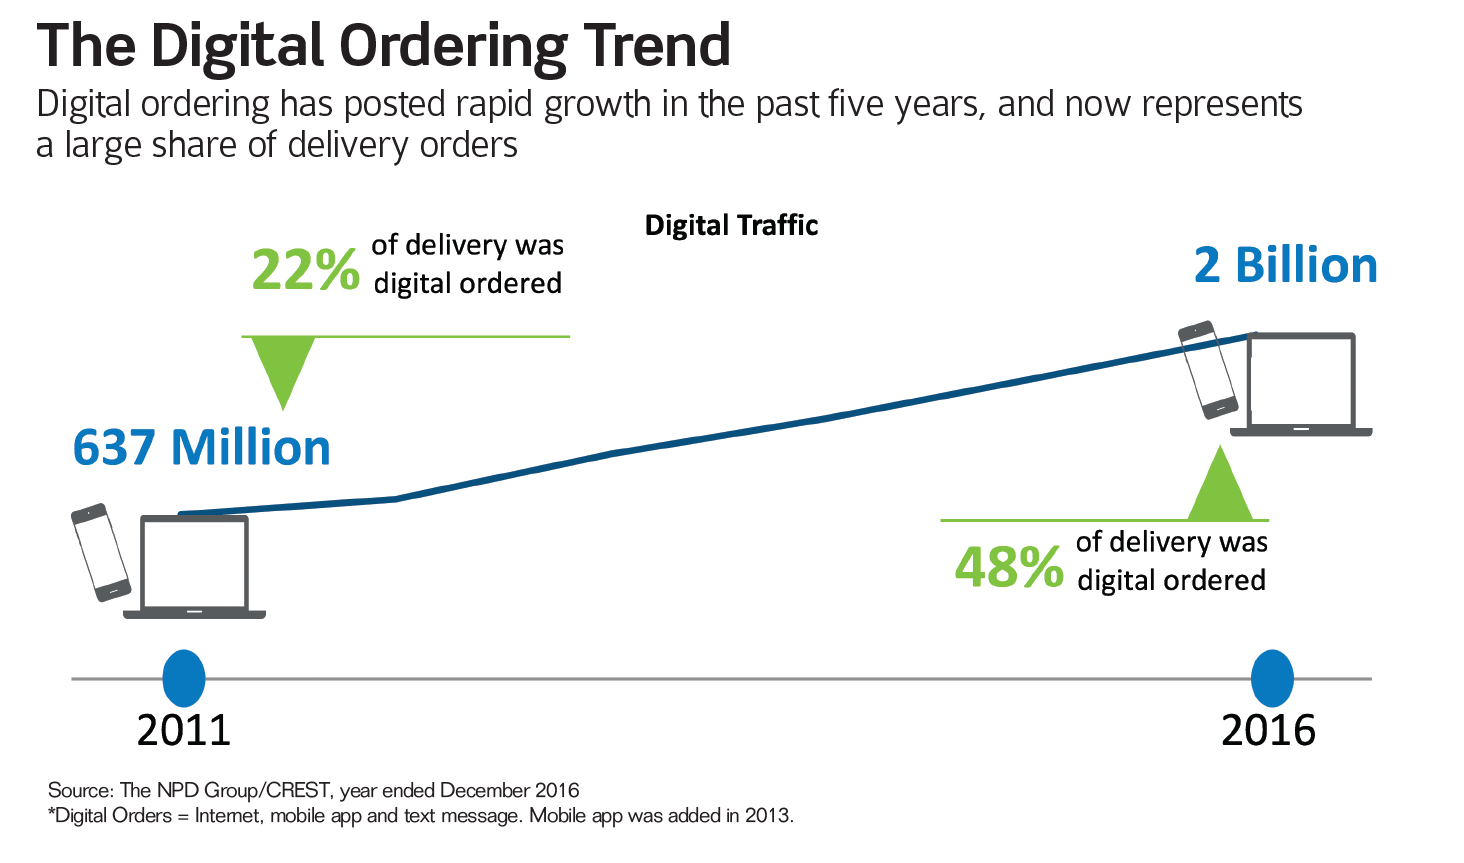 The Digital Ordering Trend